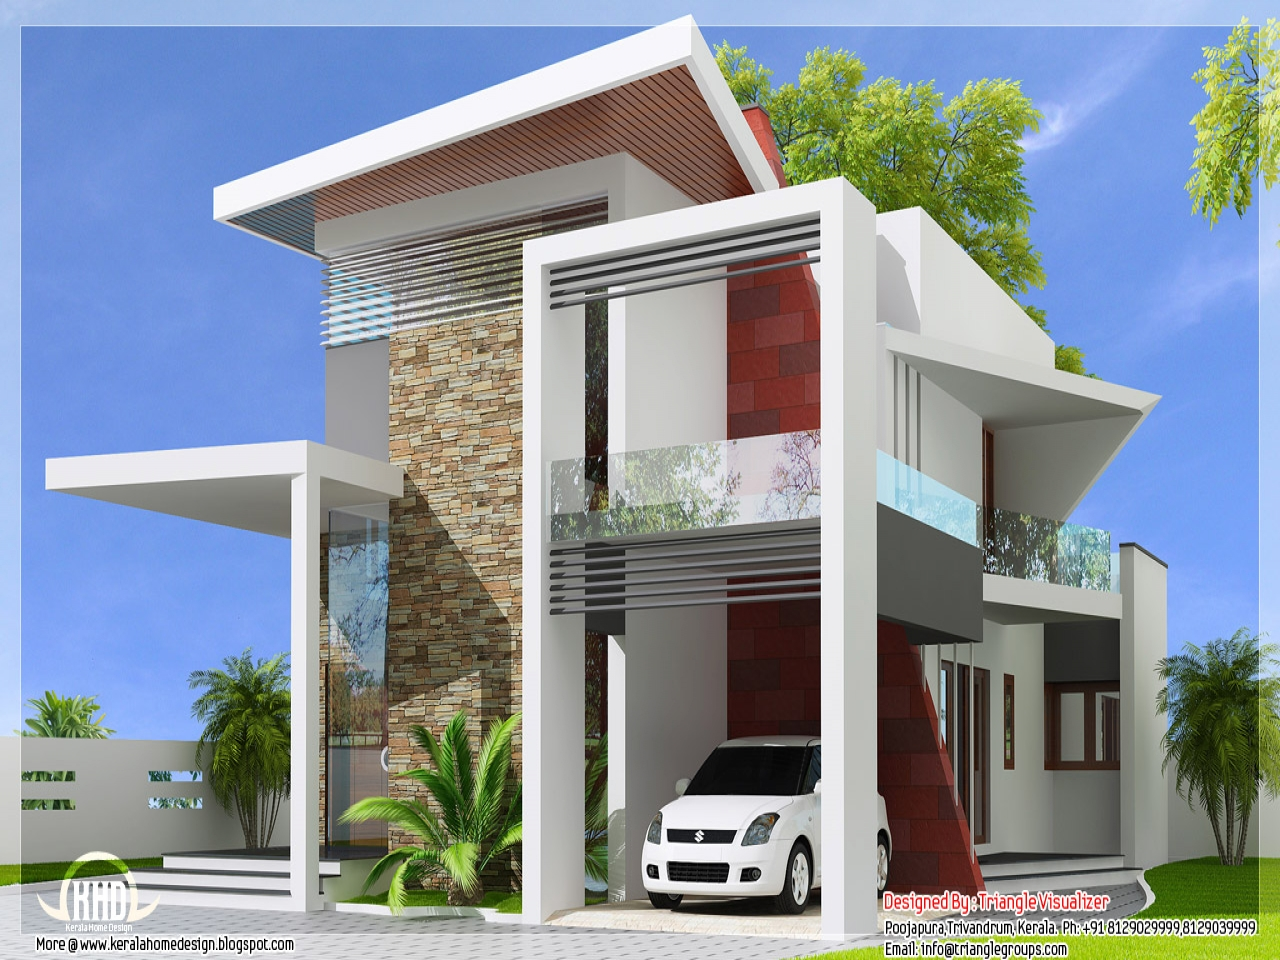 Modern Front Elevation View : Elevation views of houses modern house designs